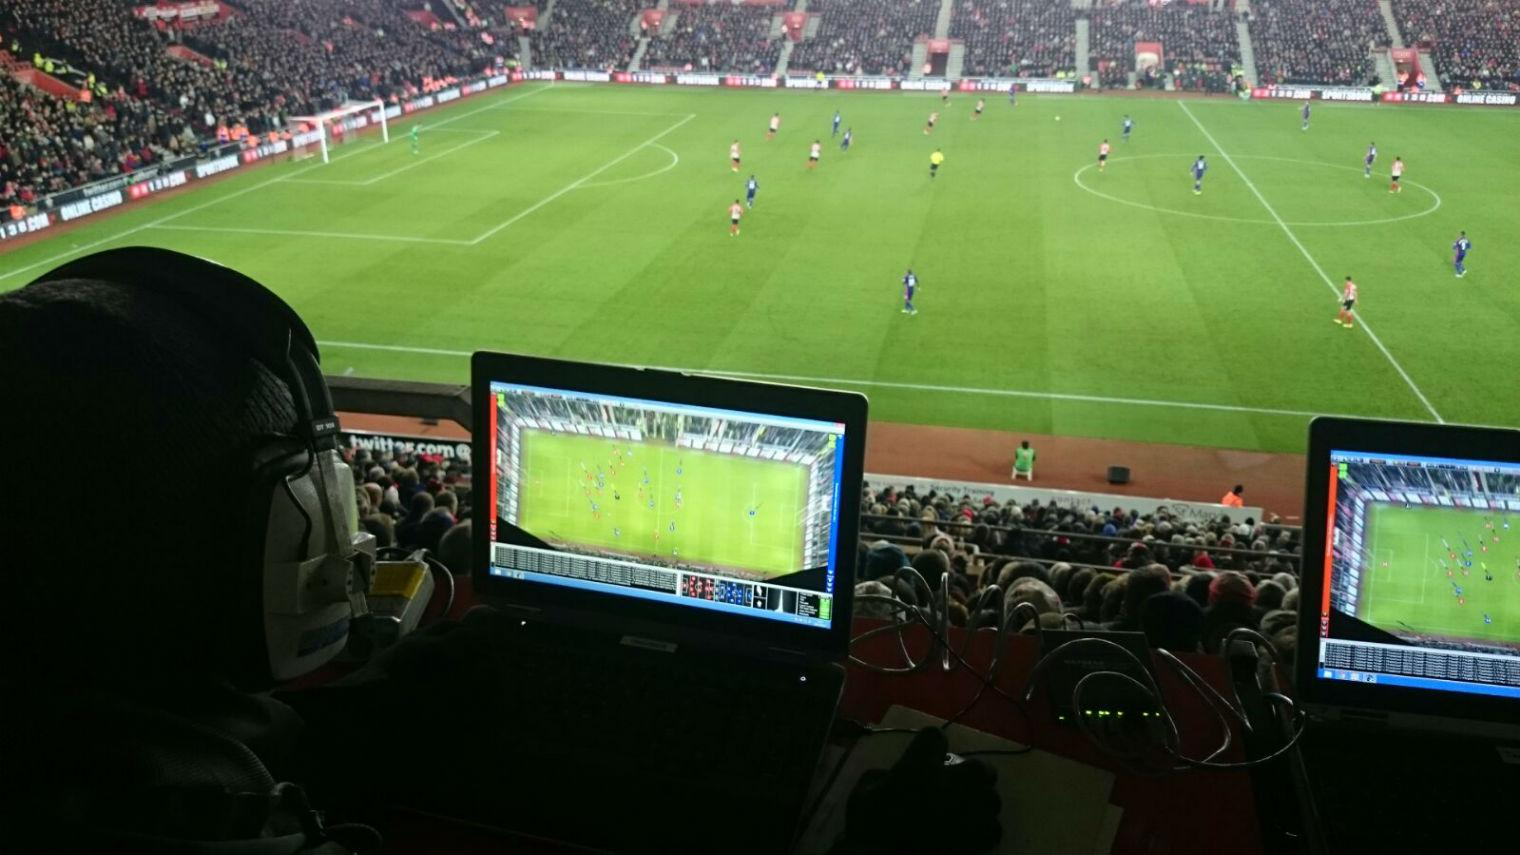 Here's what the man with an Xbox controller at St James' Park was actually doing